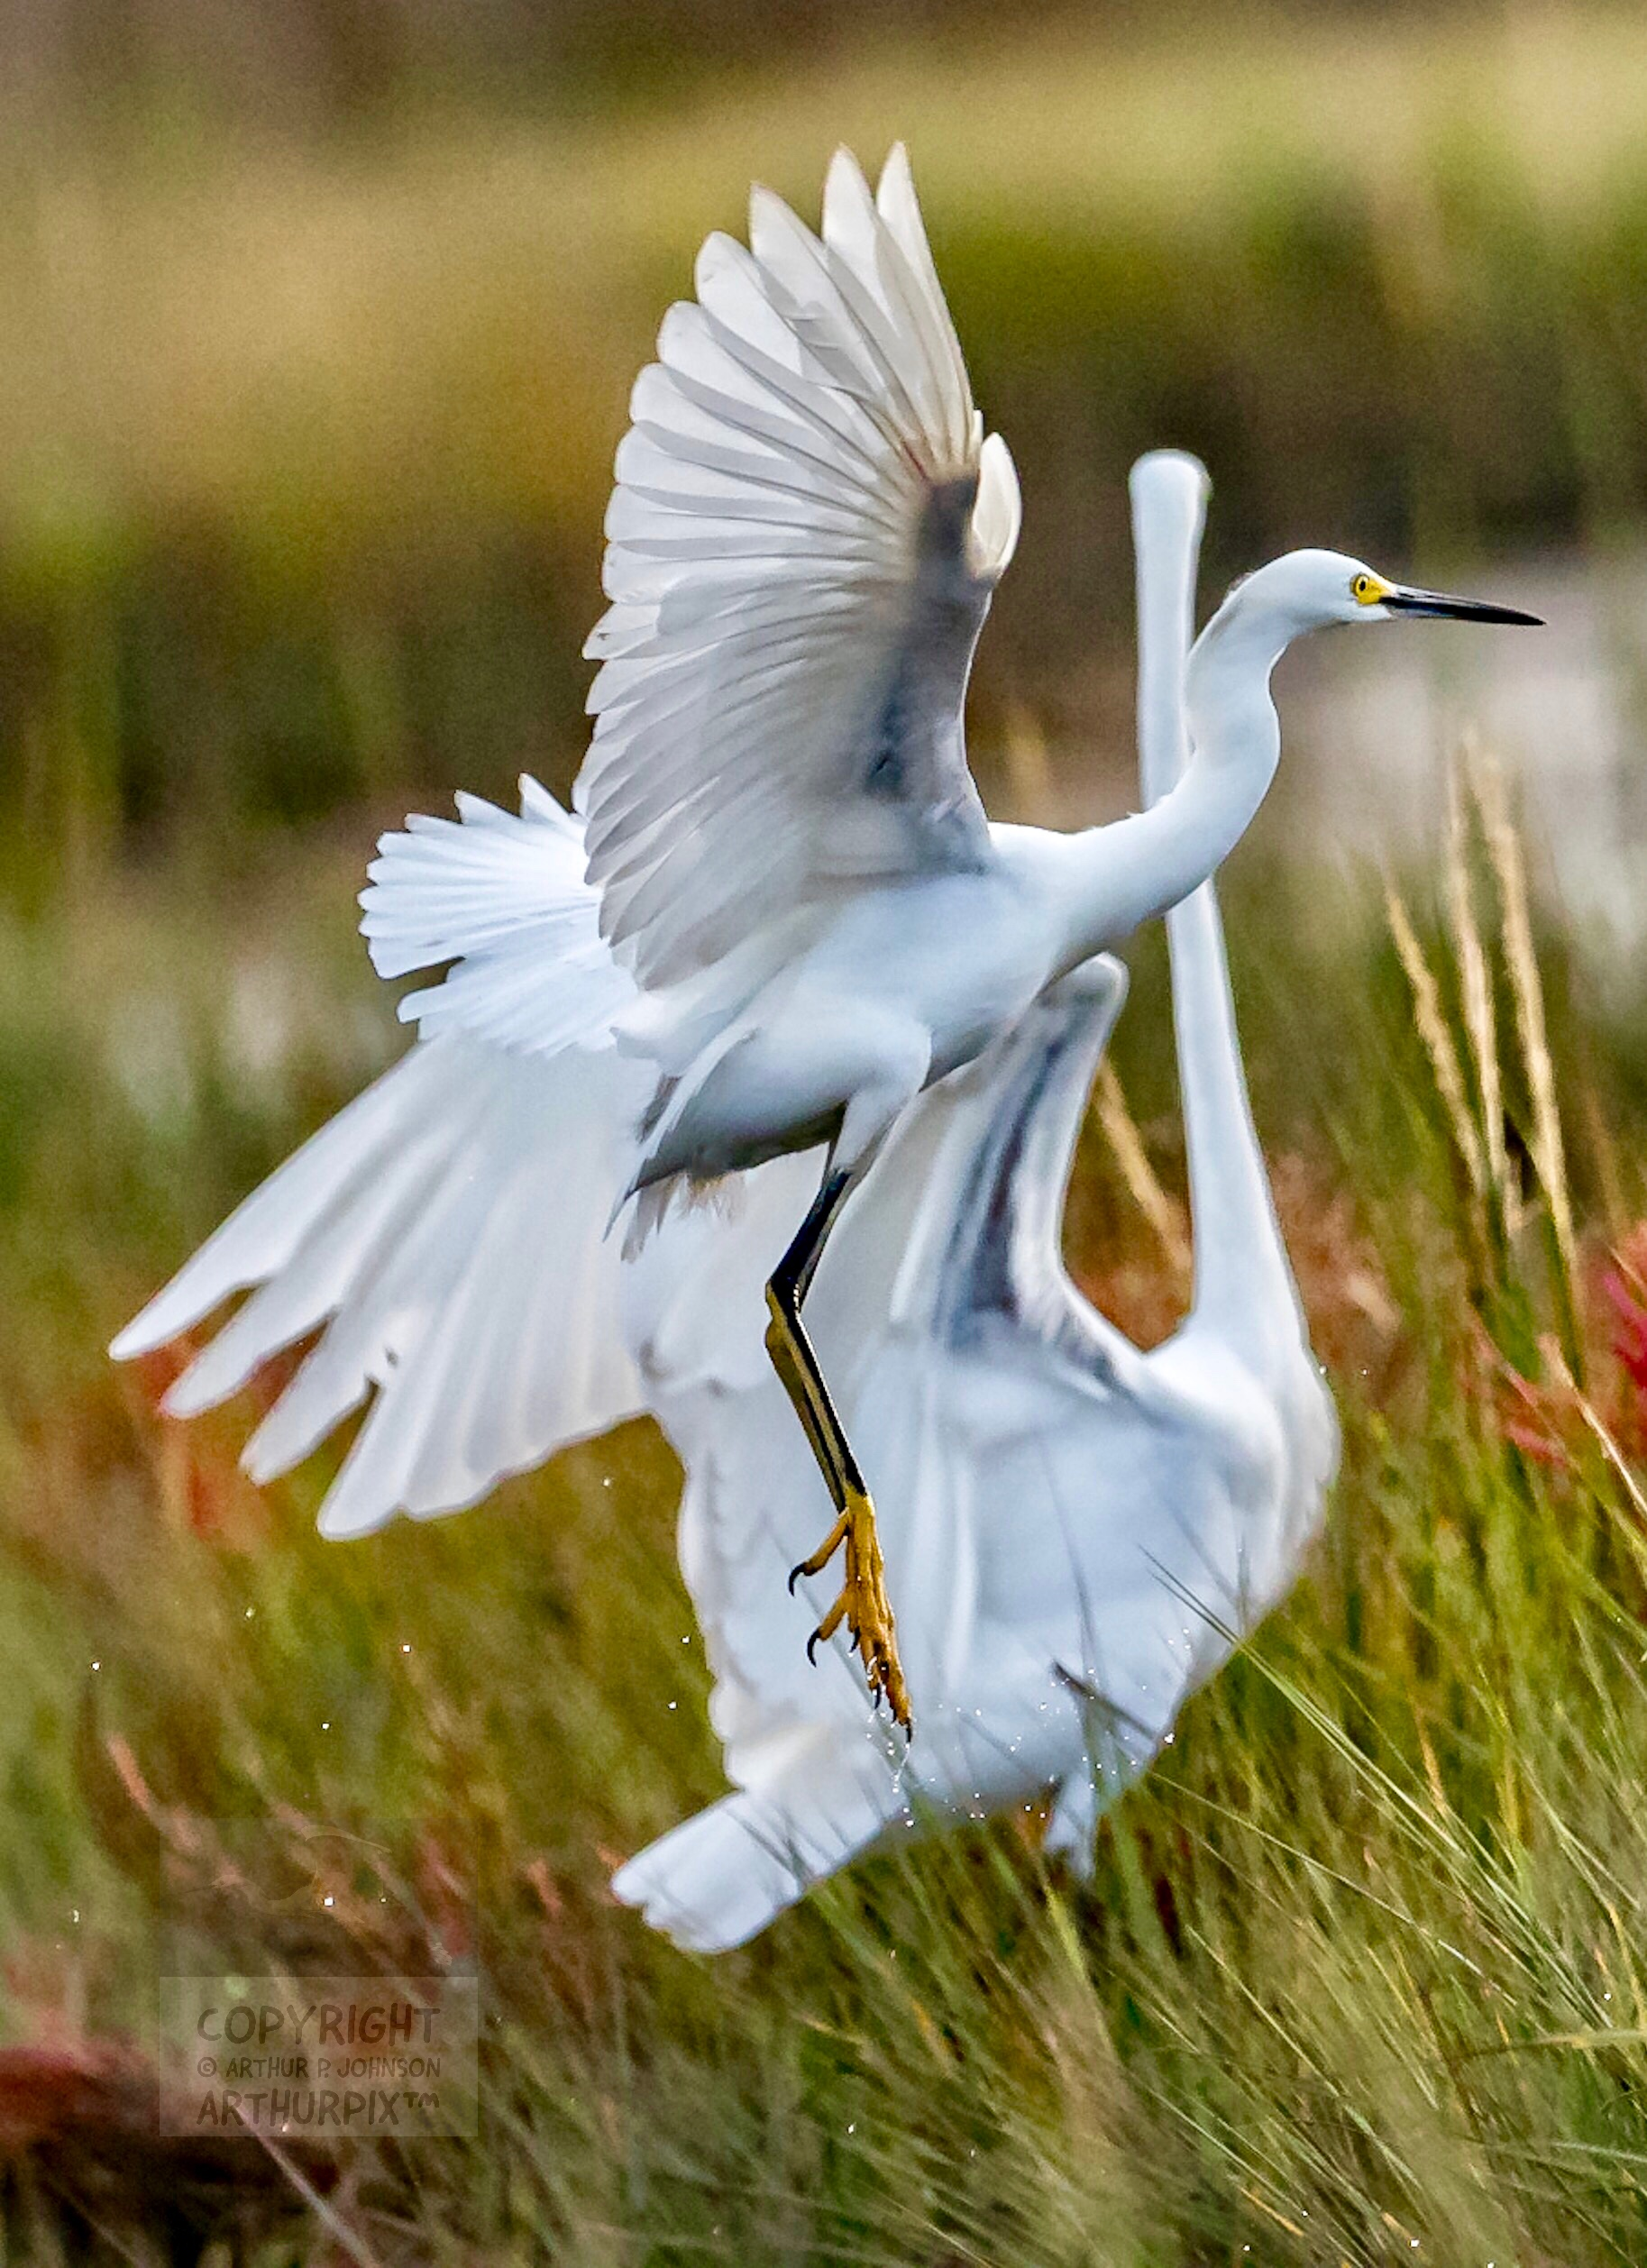 Juvenile Great Egret in Flight with adult in background